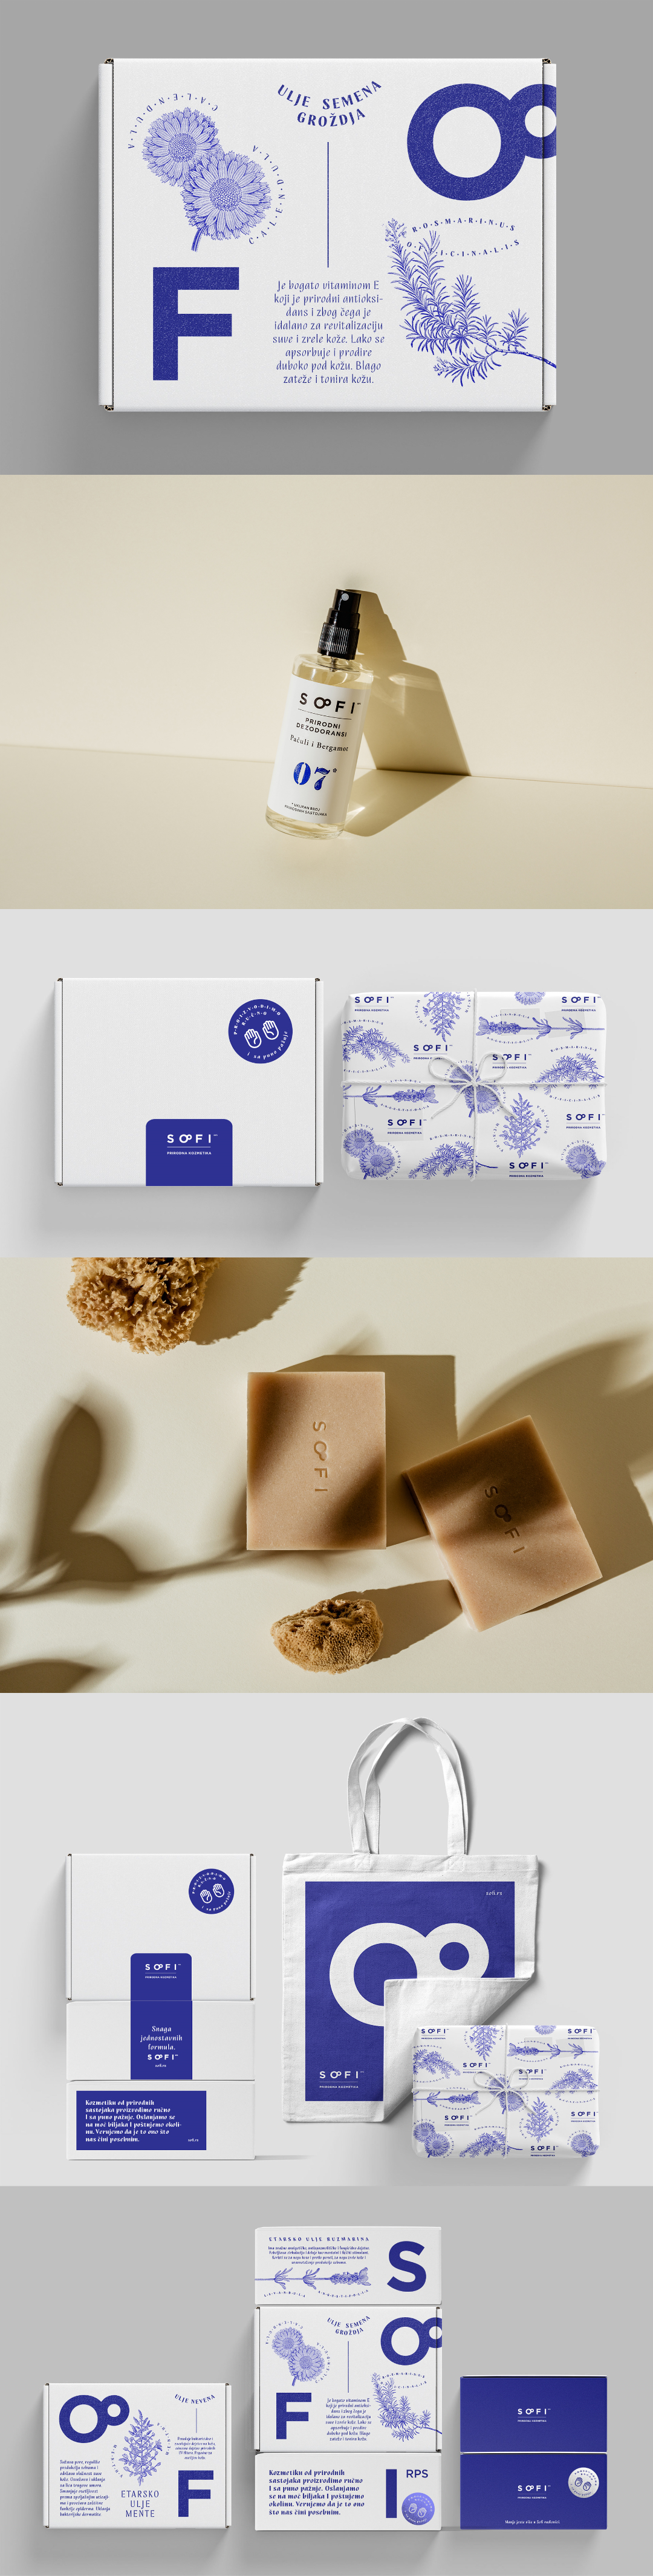 Branding,Art Direction,Graphic Design